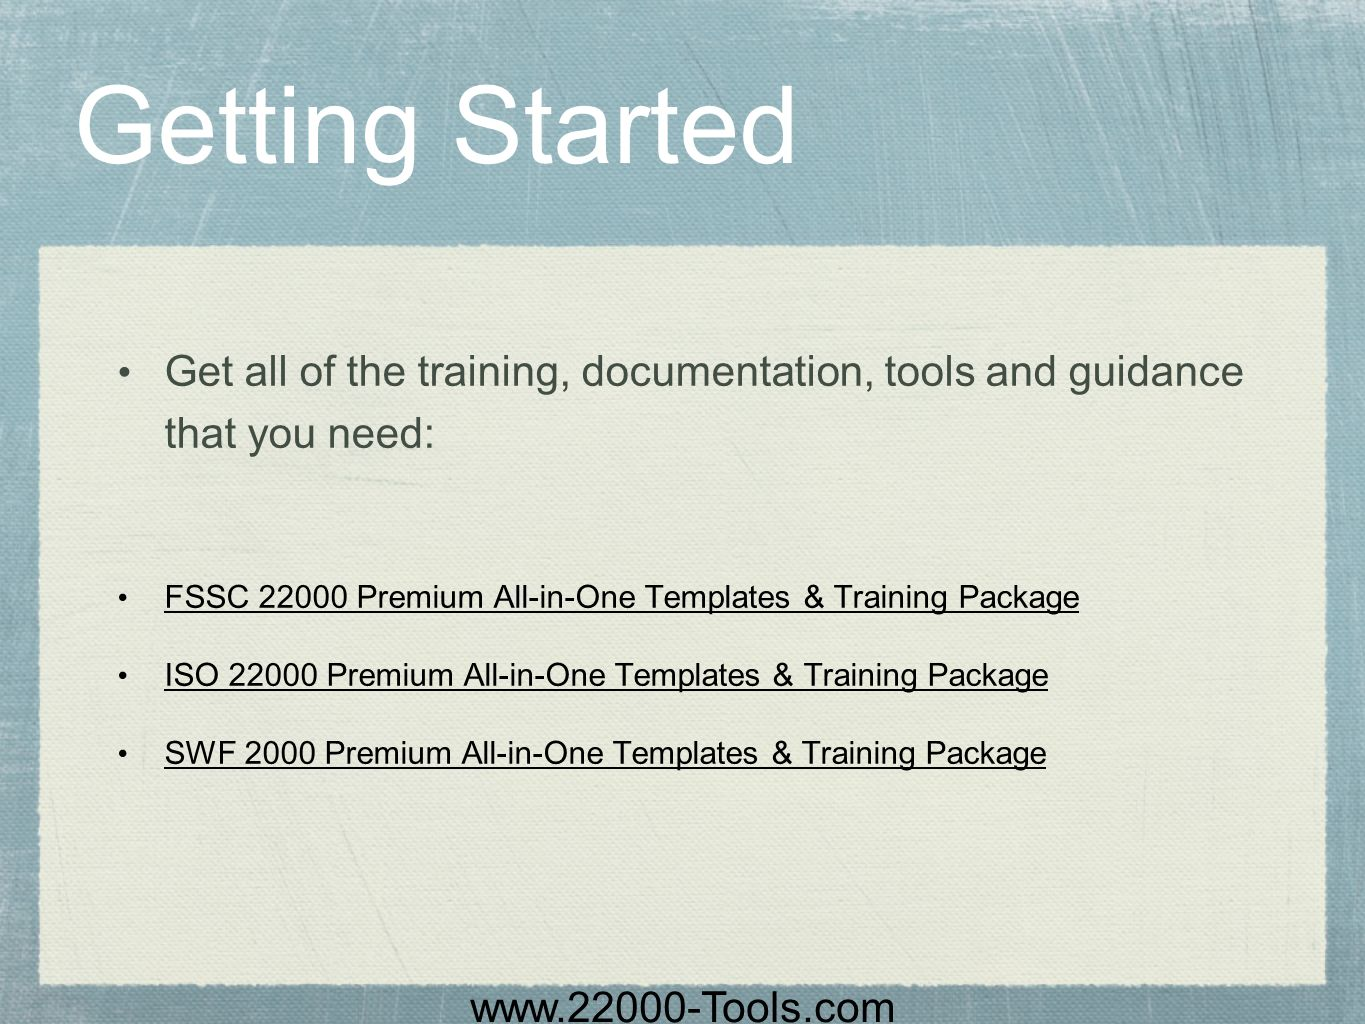 Getting StartedGet all of the training, documentation, tools and guidance that you need: FSSC 22000 Premium All-in-One Templates & Training Package.